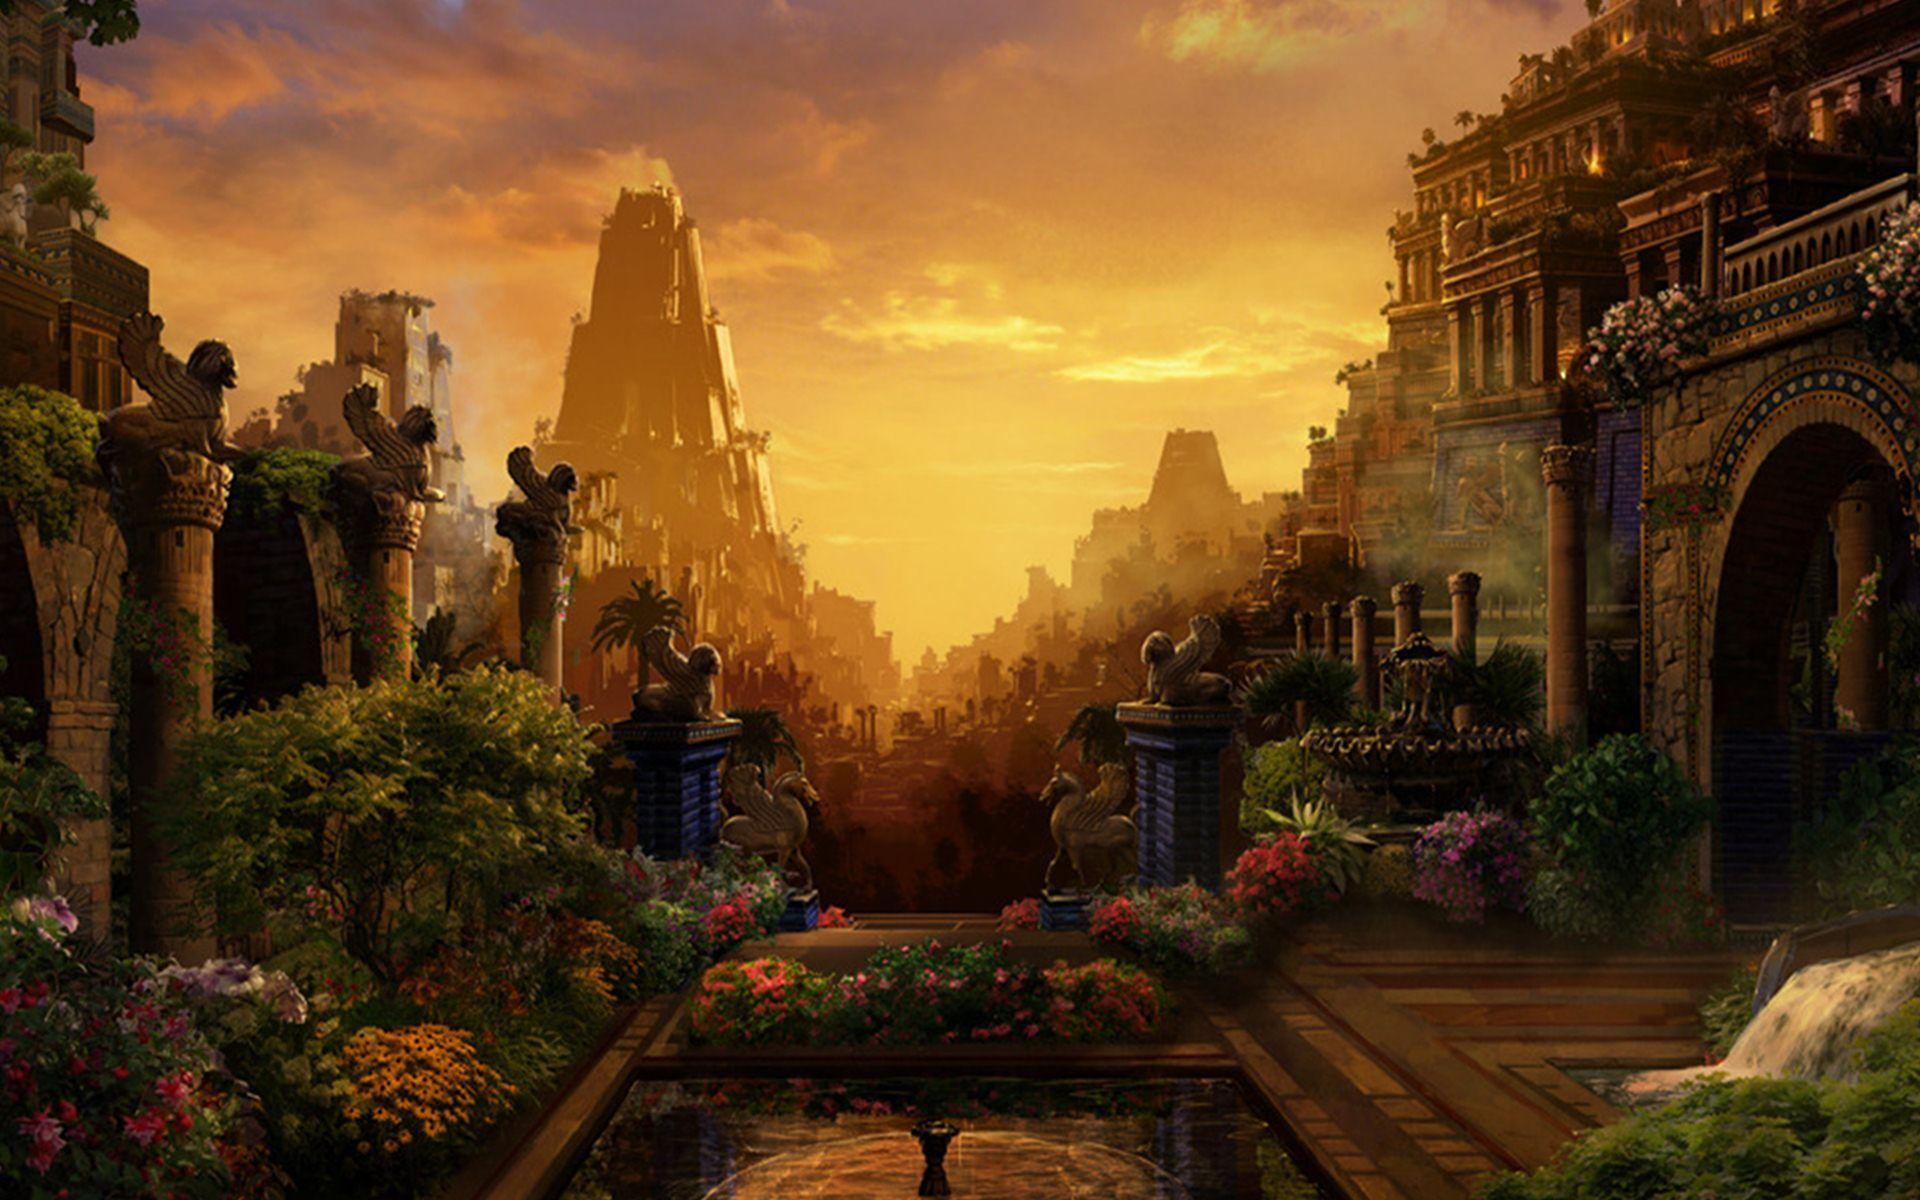 The Hanging Gardens Of Babylon Wallpapers  Wallpaper Cave